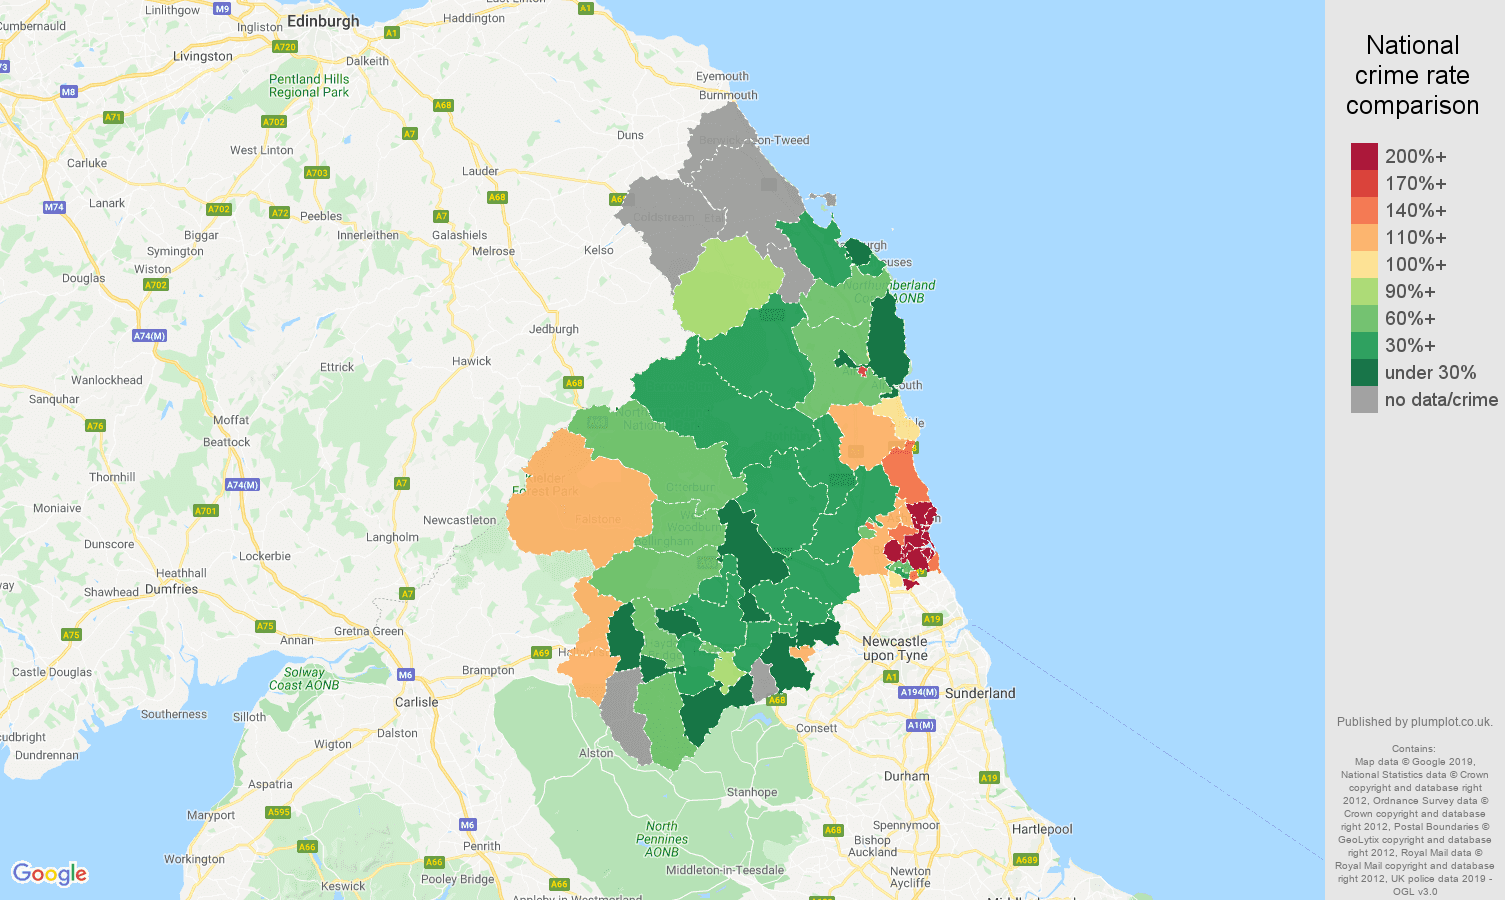 Northumberland public order crime rate comparison map